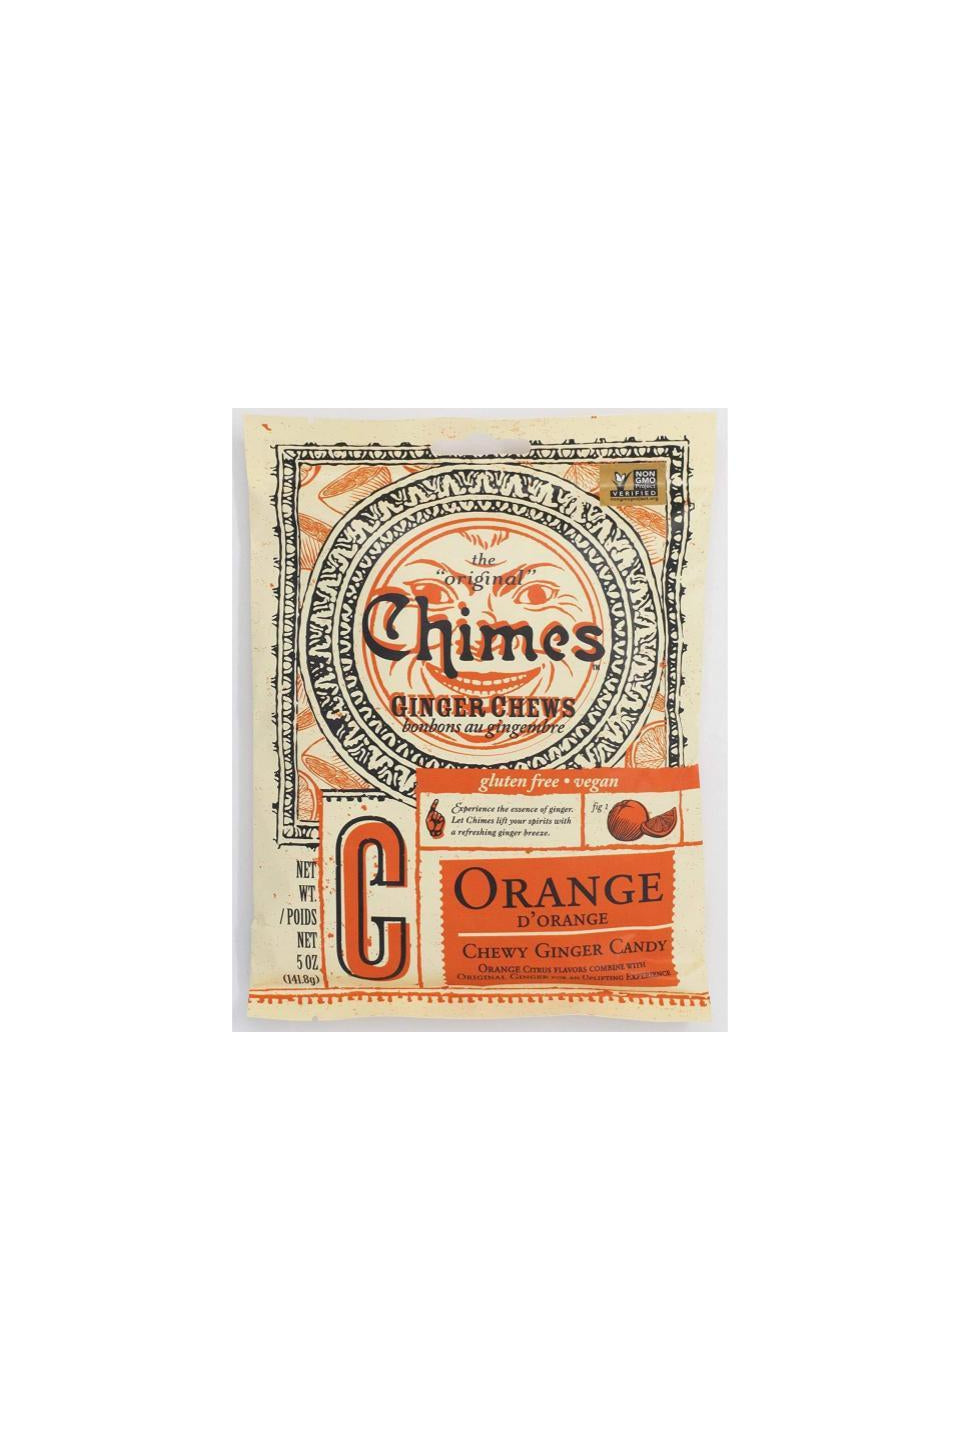 Chimes Orange Ginger Chews 141.8g